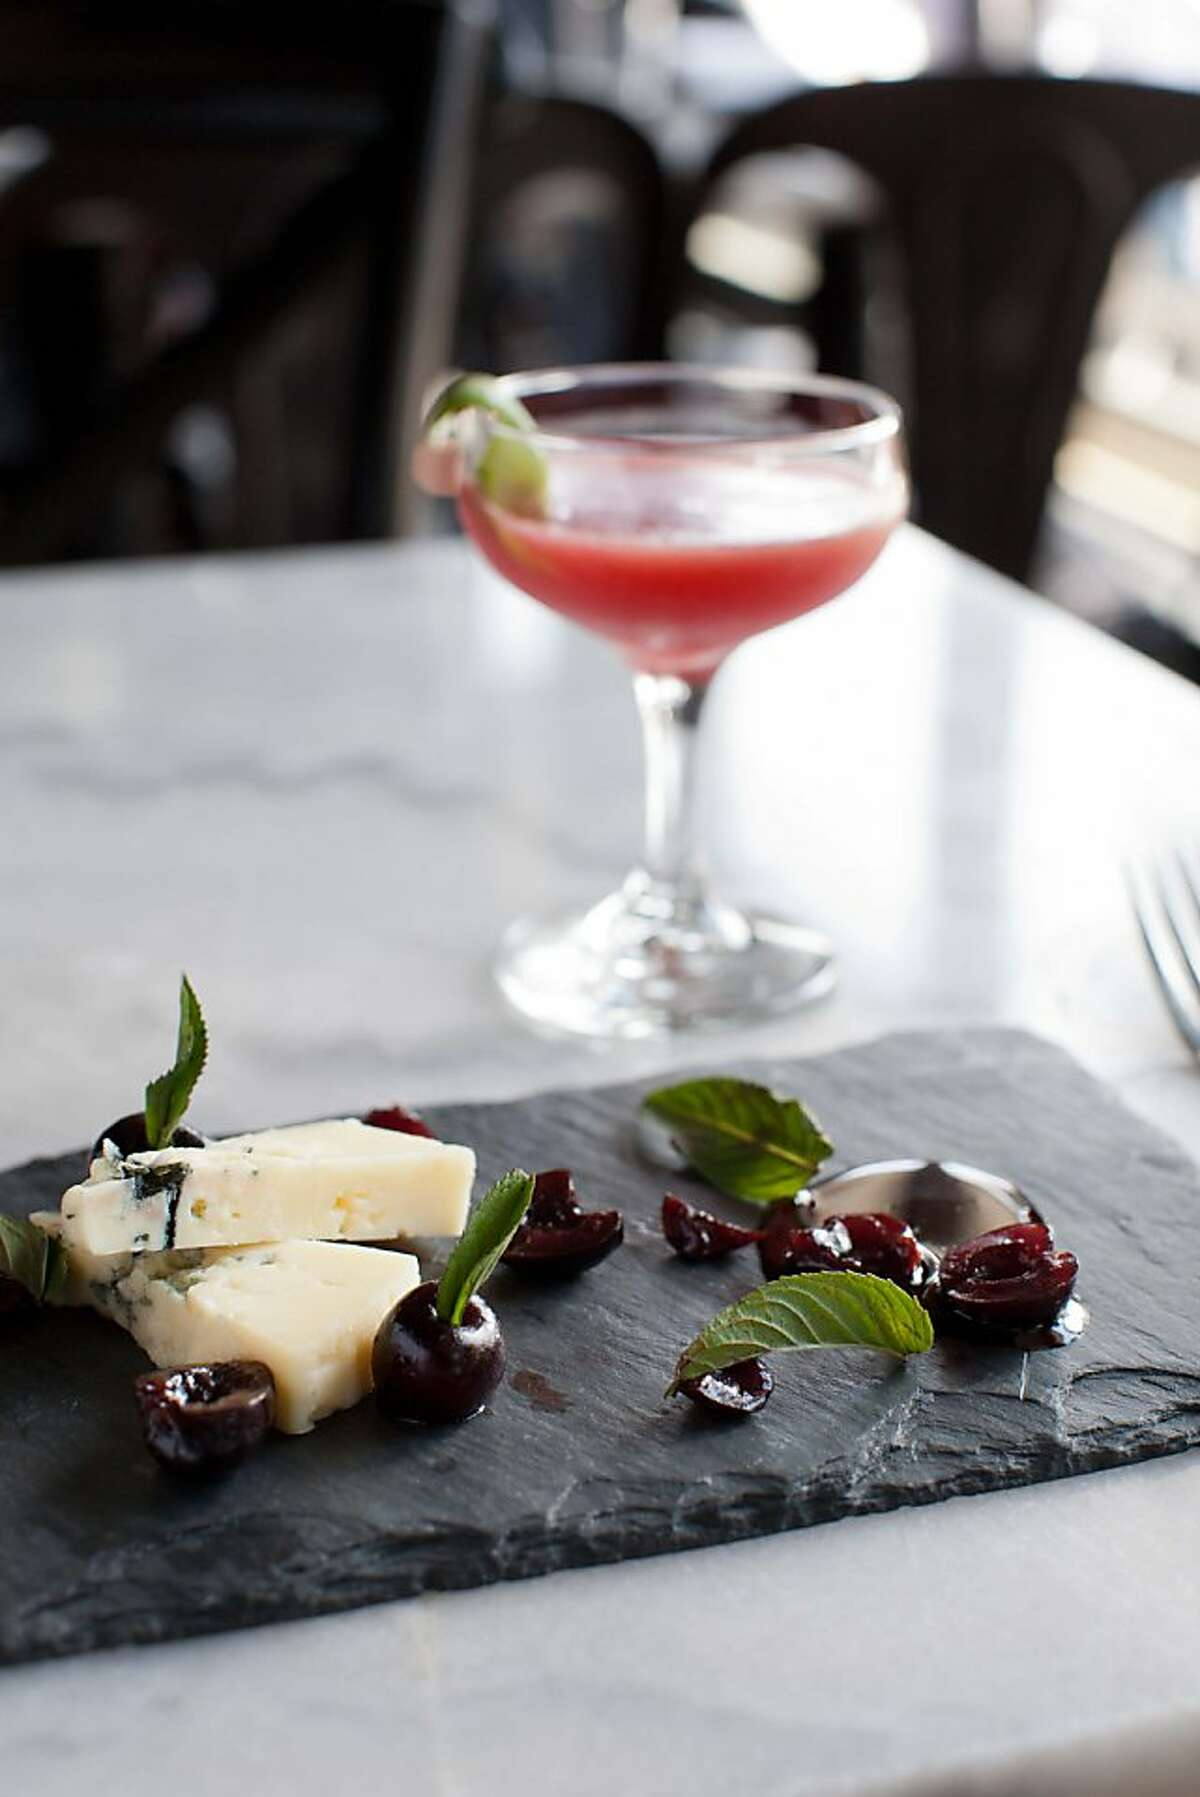 """Park Tavern restaurant's new """"Three Martini lunch and Summer Fridays"""" program features three courses, each paired with a martini-type drink, small in size so guests can indulge. Here, a dessert of Rogue Creamery blue cheese with smoked bing cherries, chocolate mint sauce and walnut bread is paired with a sour cherry daiquiri."""